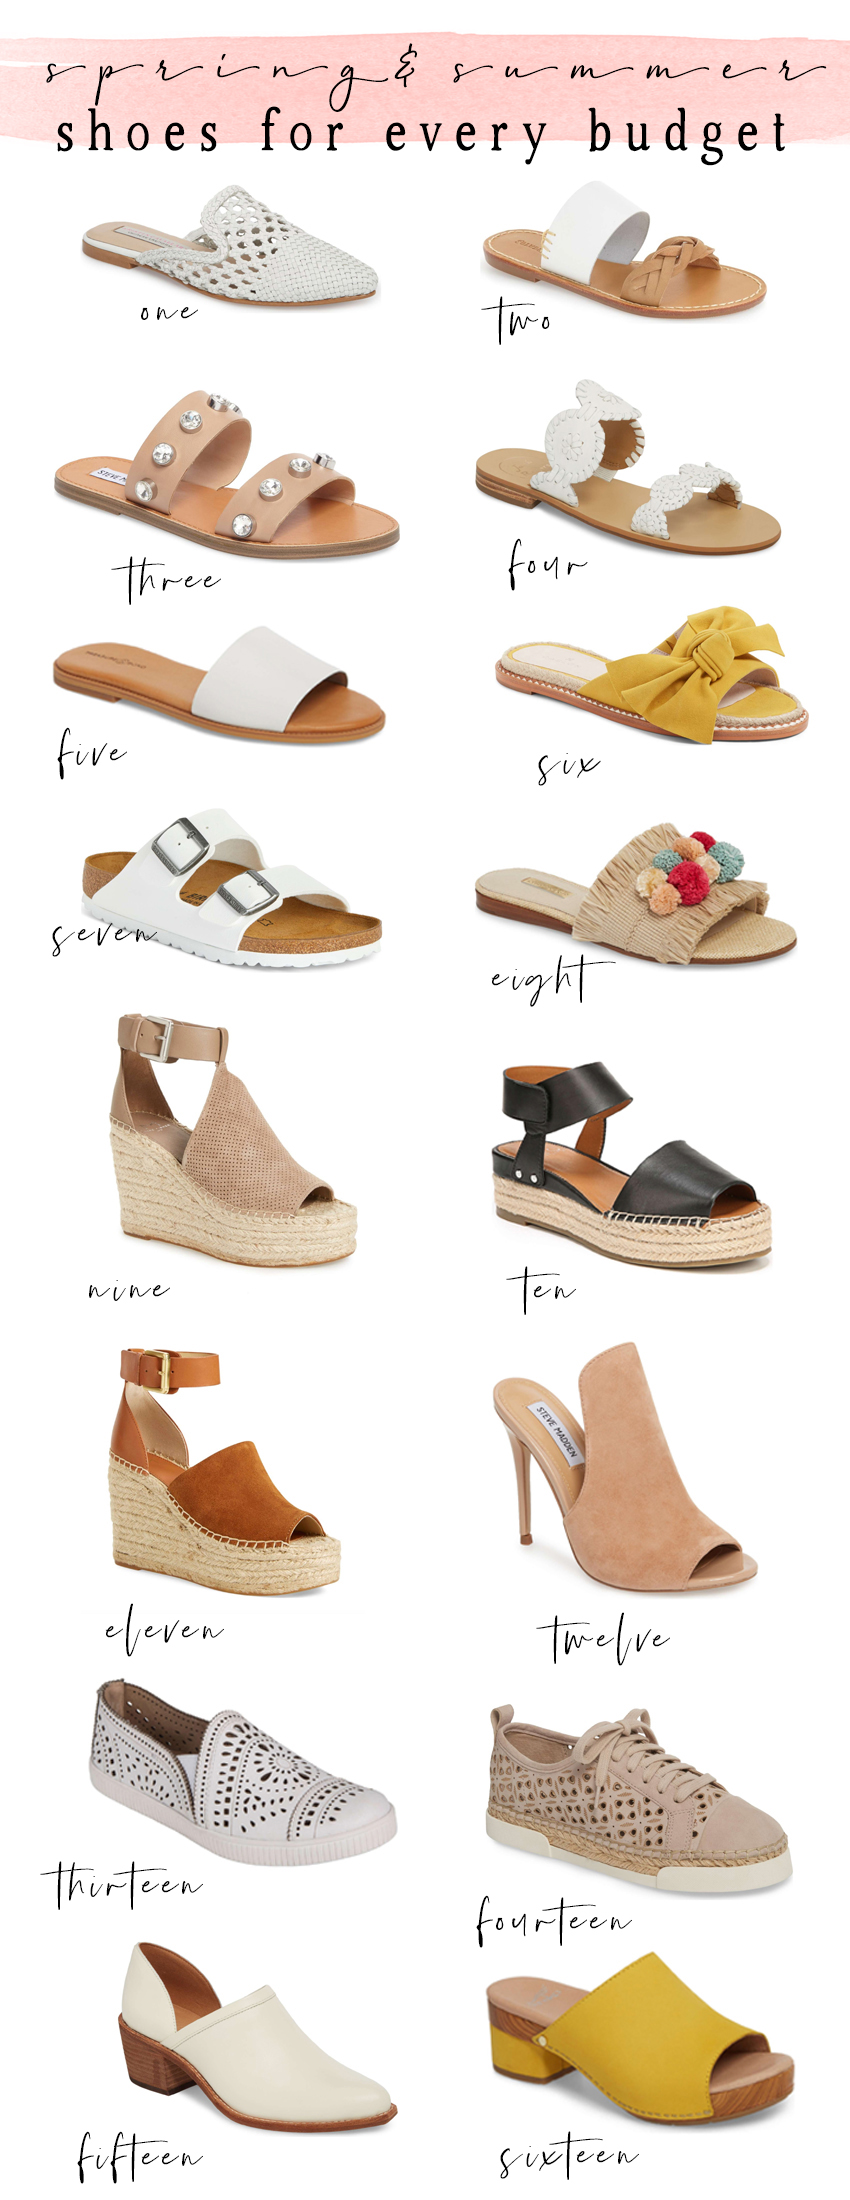 Chicago fashion blogger Happily Inspired is sharing the best spring and summer shoes at every budget! Espadrilles, sandals, sneakers and more.